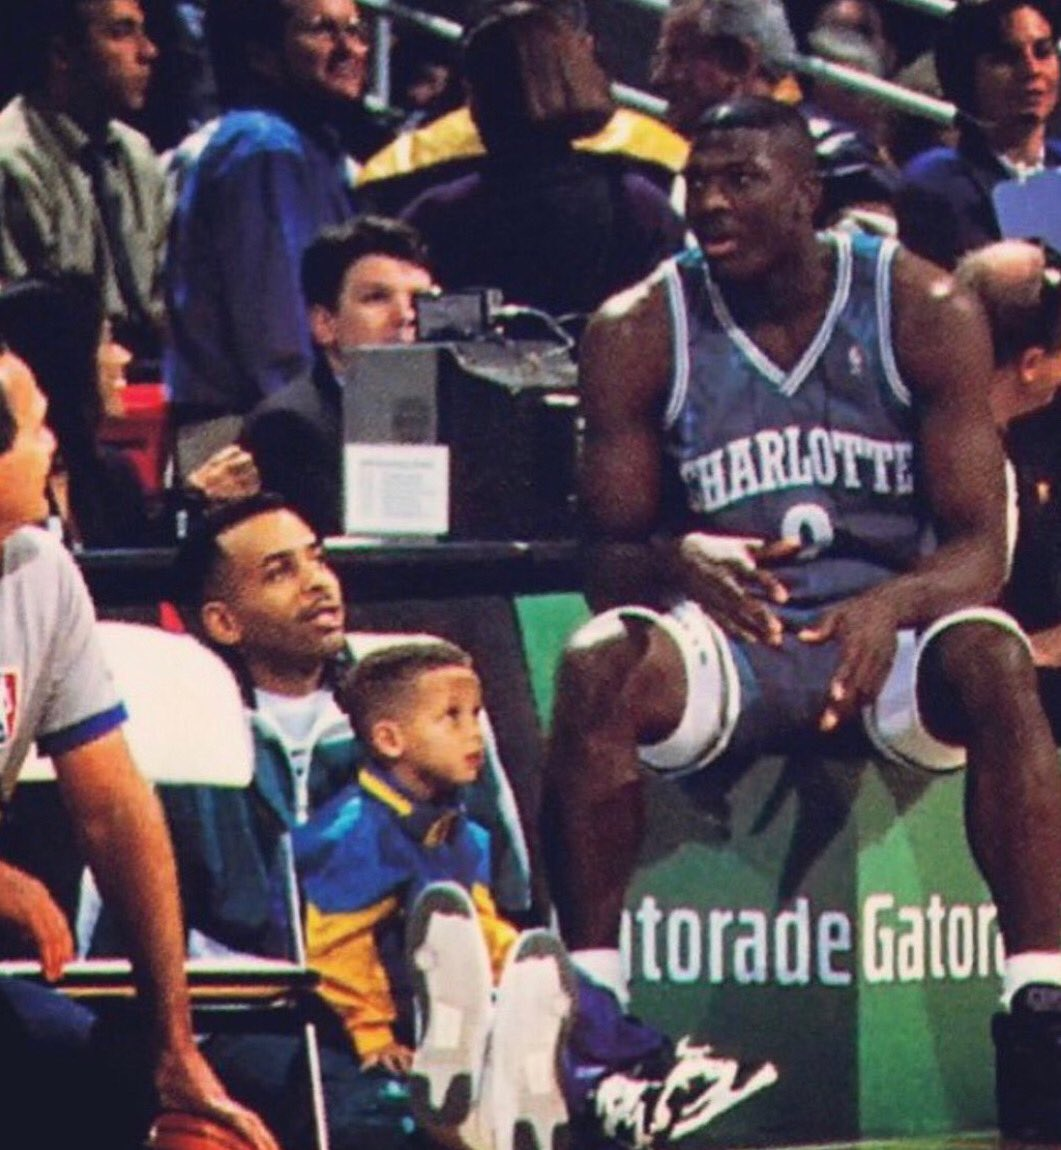 1992 All-Star Weekend: Steph Curry on his dad Dell's lap, as Larry Johnson looks on.